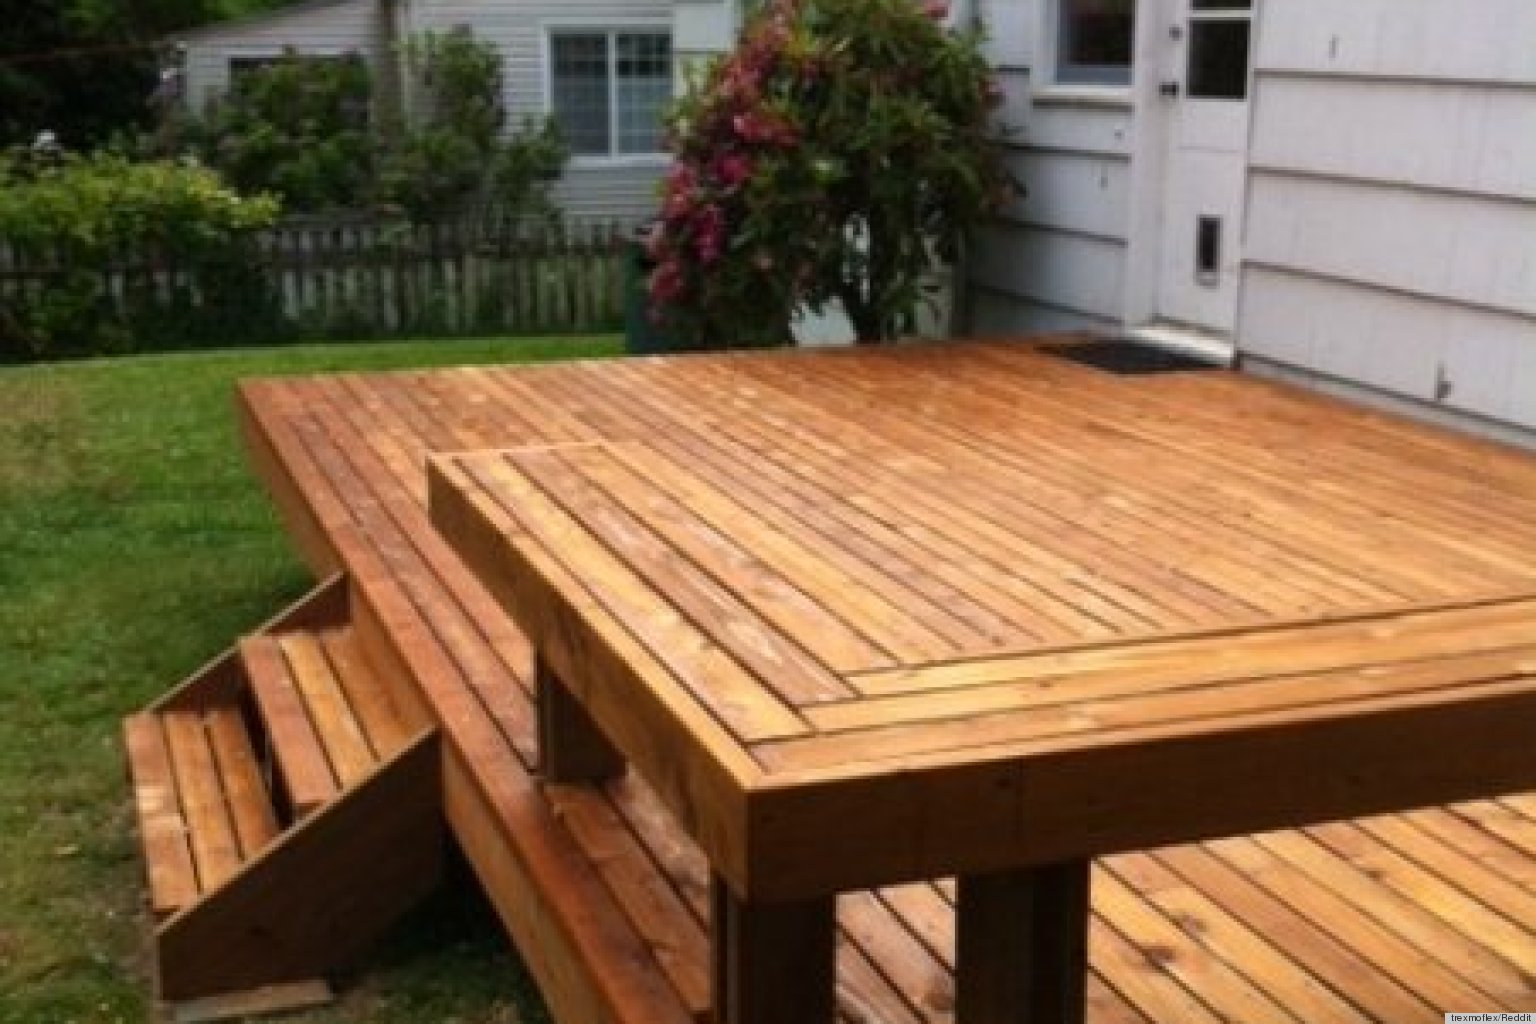 building a deck is how one couple initiated their new home photos